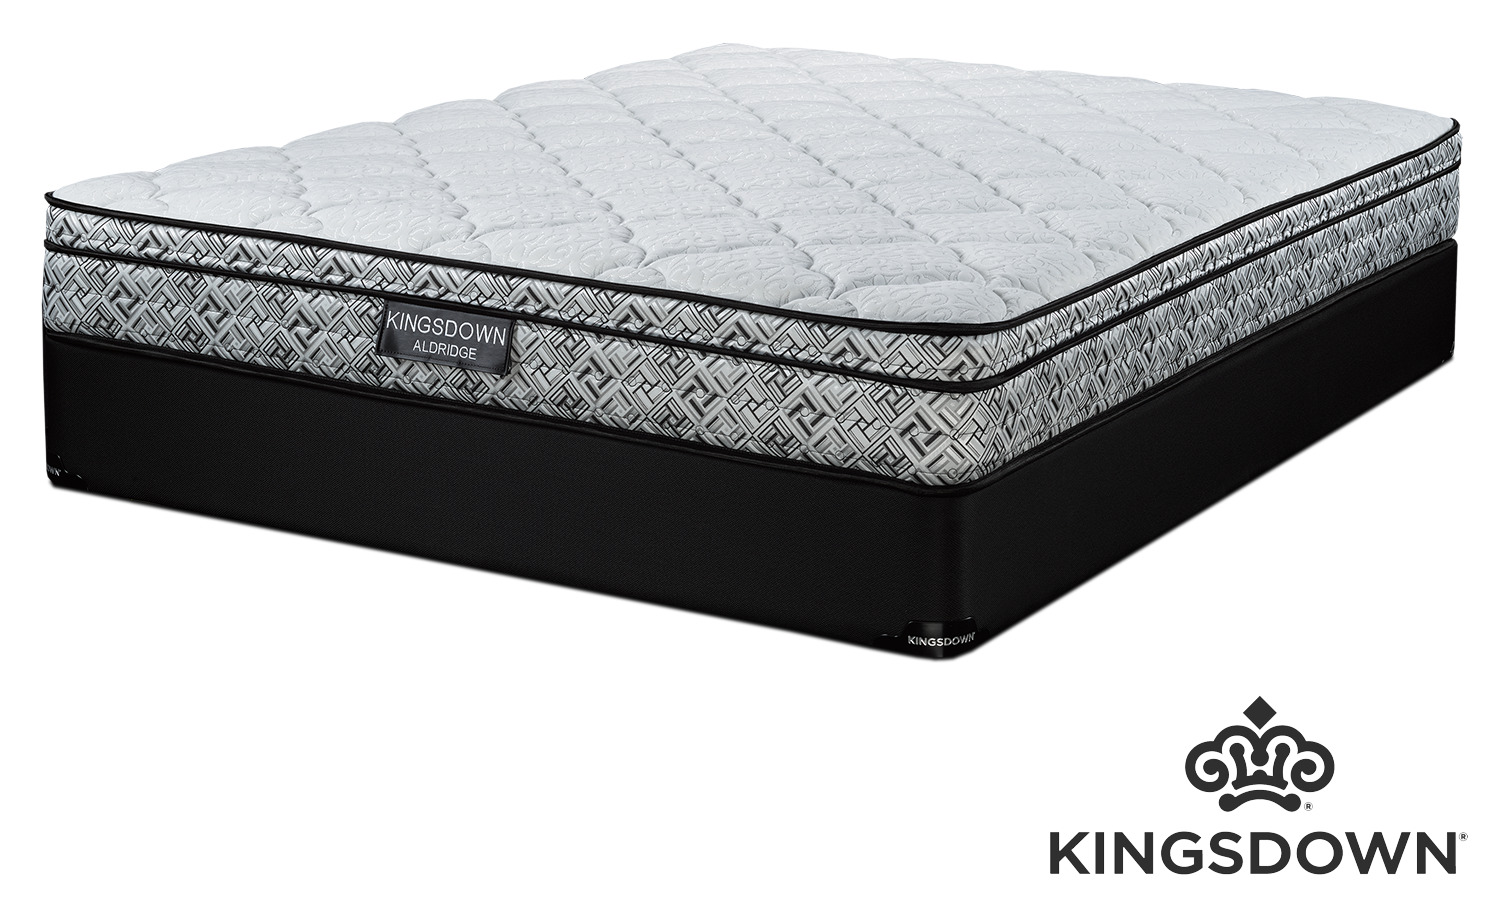 Kingsdown Aldridge Cushion Firm Queen Mattress And Boxspring Set Leon 39 S